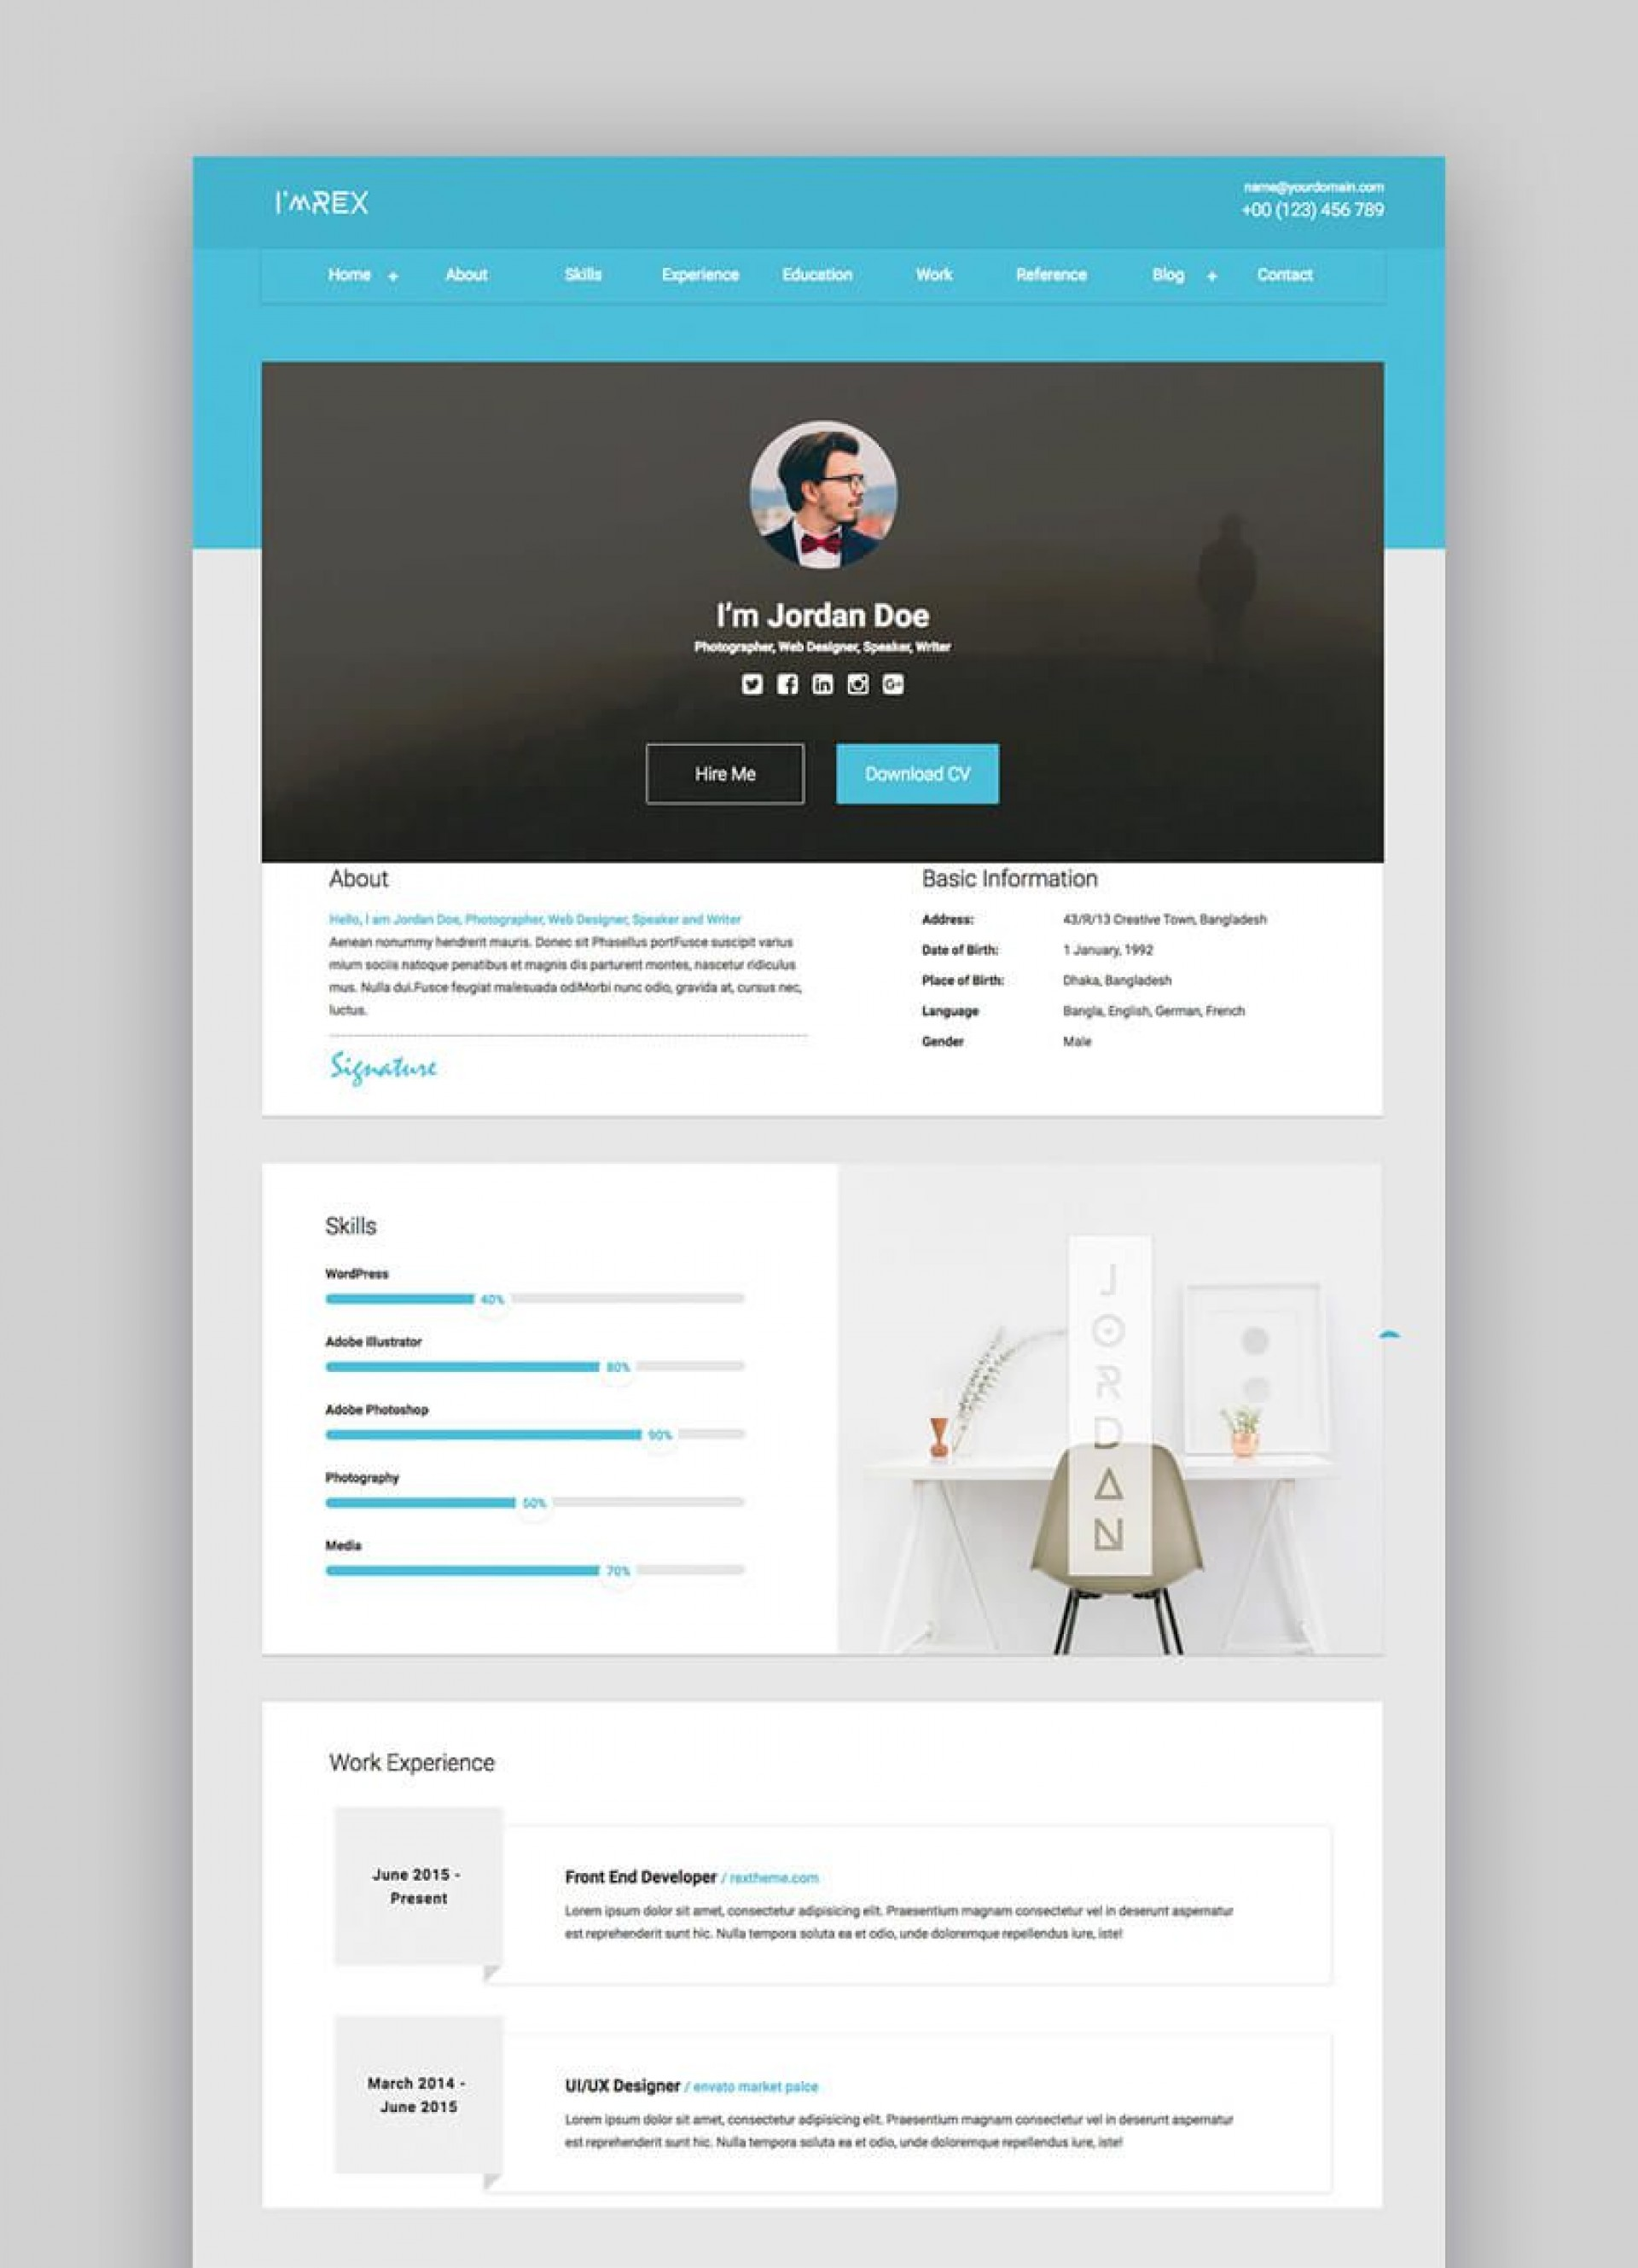 003 Archaicawful Personal Portfolio Template Free Download Image  Psd Powerpoint1920